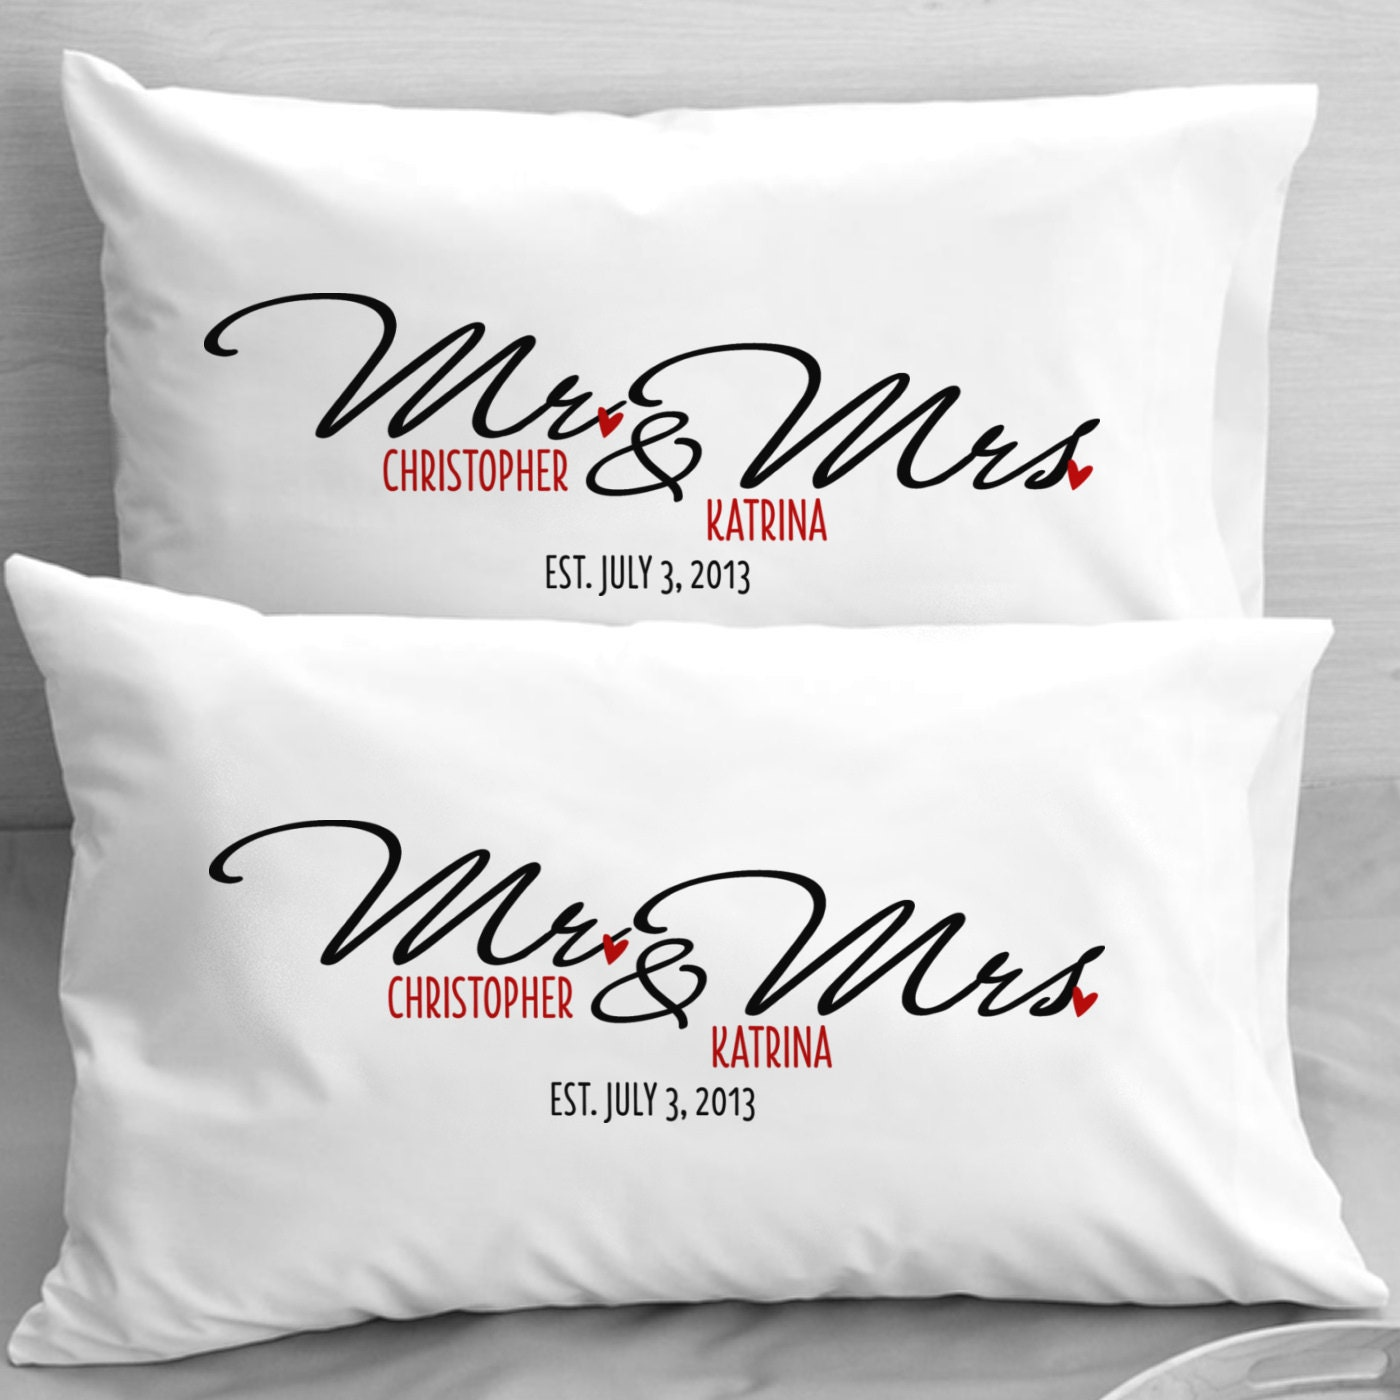 Unique Gifts For Husband On Wedding Day: Personalized Mr And Mrs Pillow Cases Wedding Newlyweds